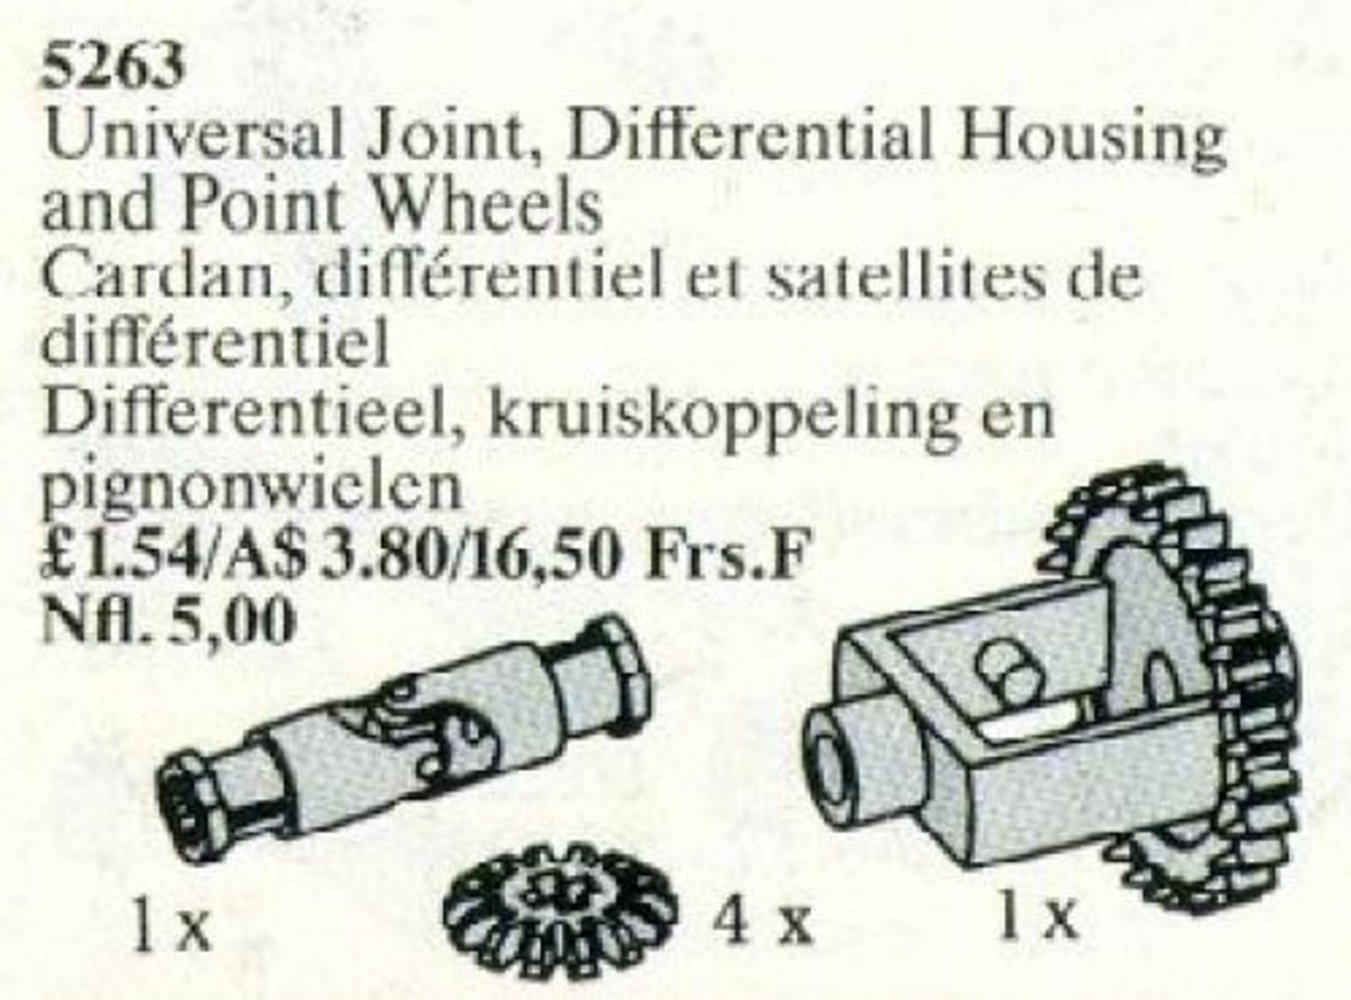 Universal Joint, Differential Housing, and Point Wheels